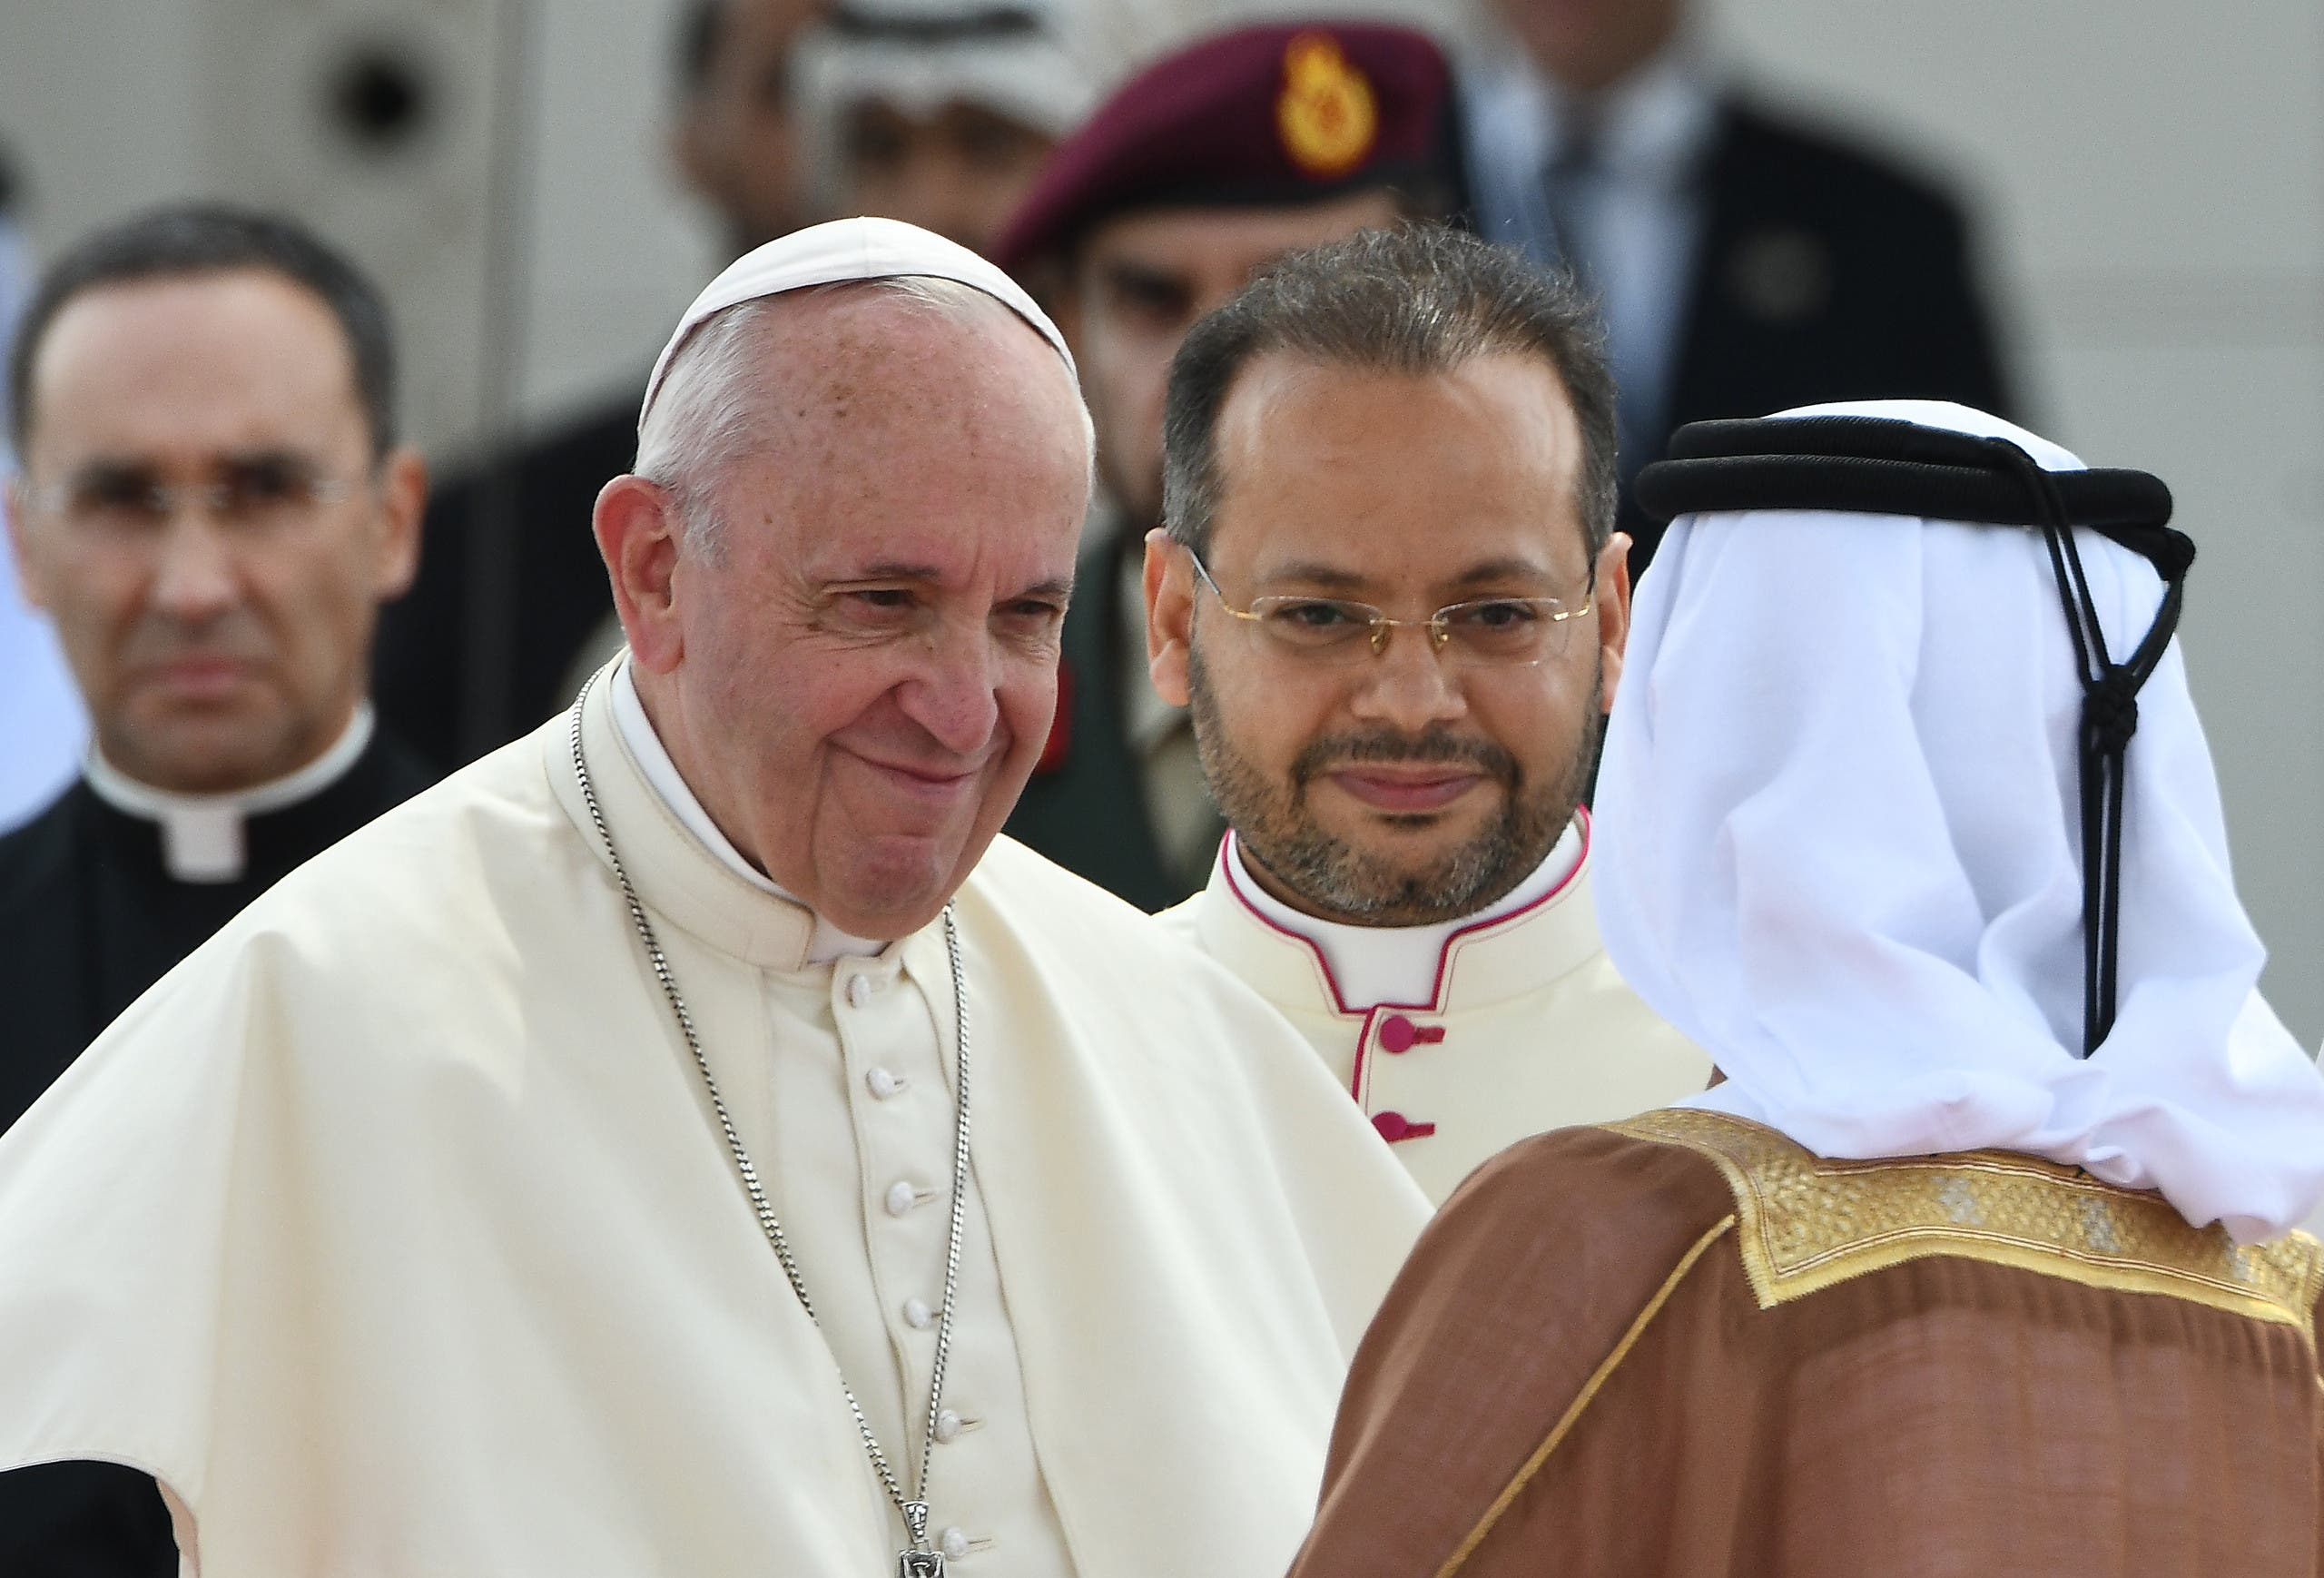 Pope Francis (L) shakes hands with a dignitary as he is accompanied by Abu Dhabi's Crown Prince Sheikh Mohammed bin Zayed al-Nahyan (R) during his welcome ceremony at the presidential palace in the UAE capital Abu Dhabi on February 4, 2019. (AFP)